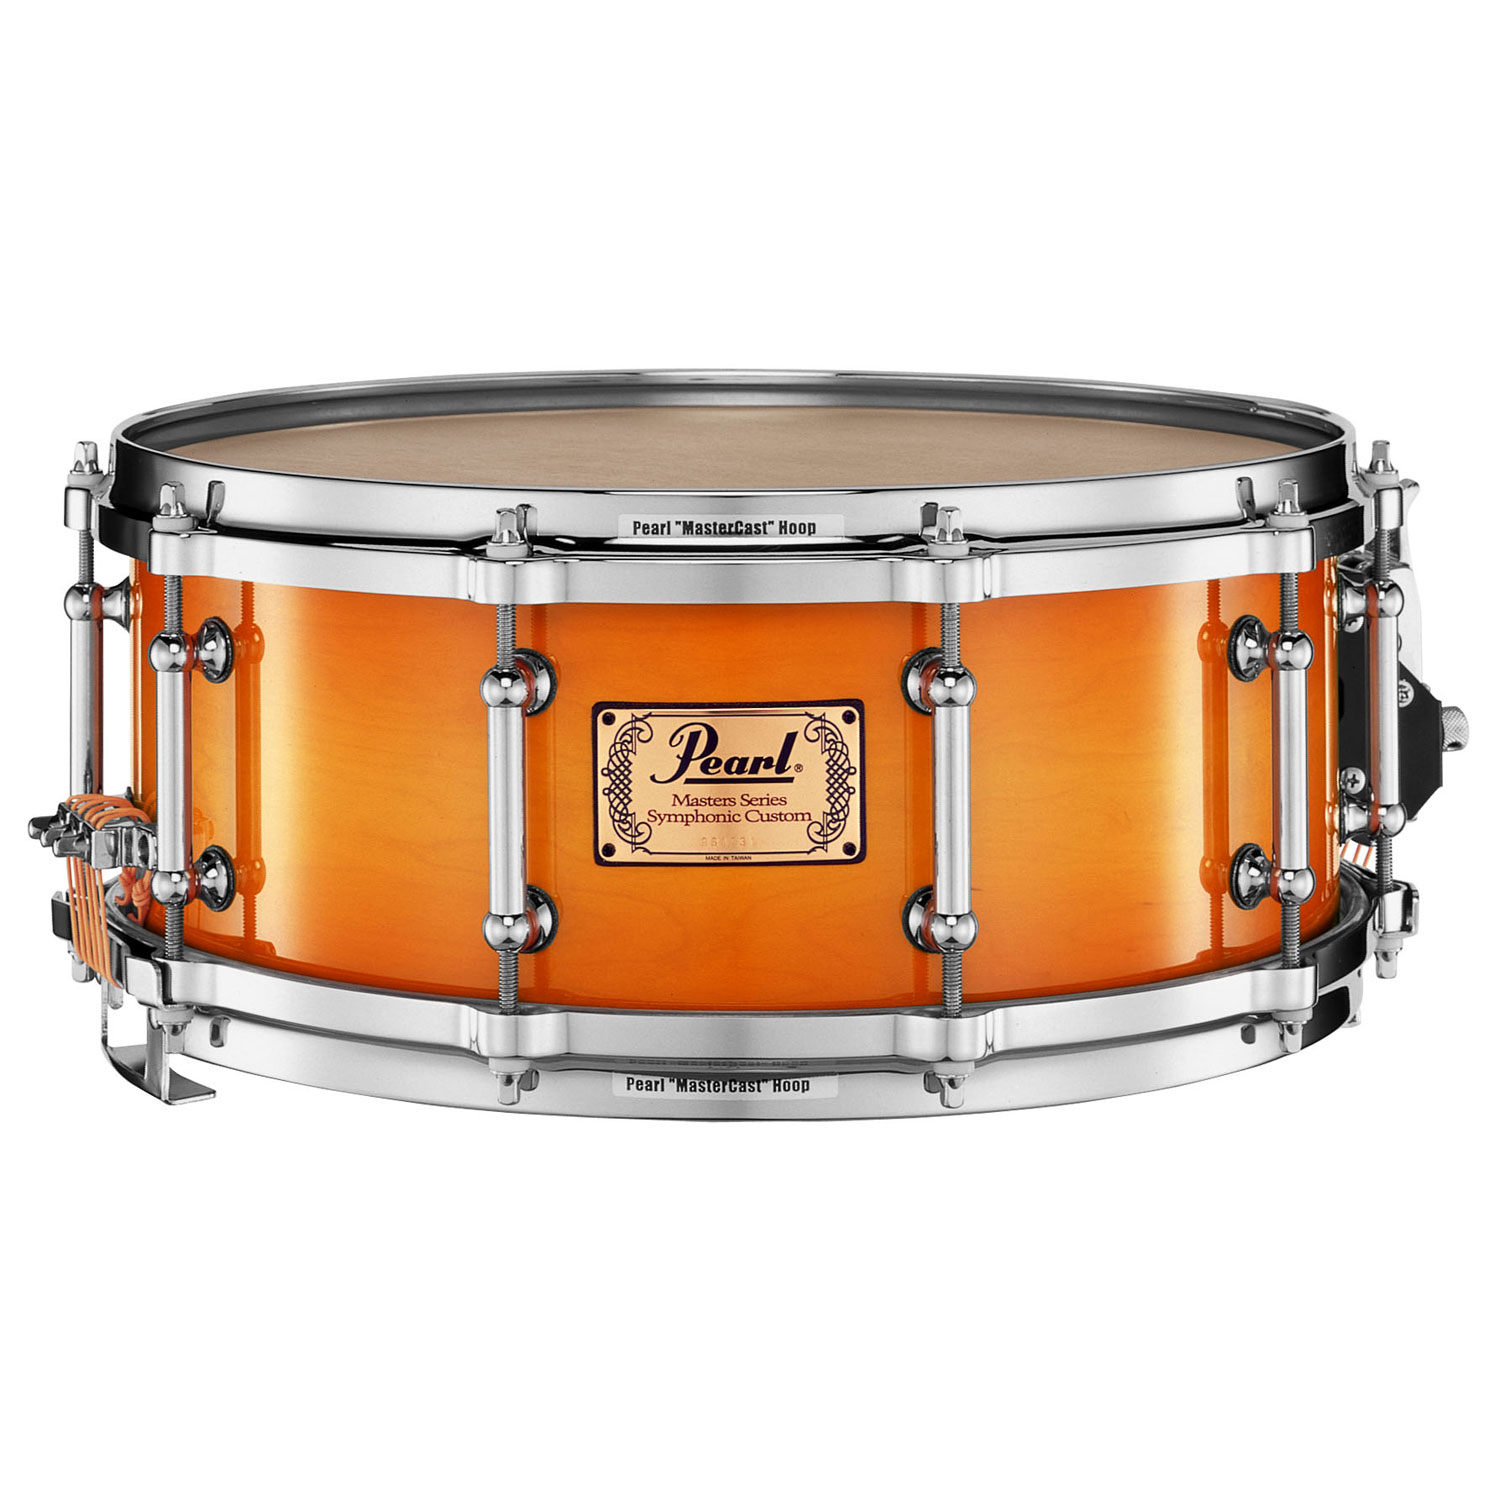 "Pearl 14"" x 5.5"" Masters Symphonic 6-Ply Maple Concert Snare Drum in Antique Sunburst"